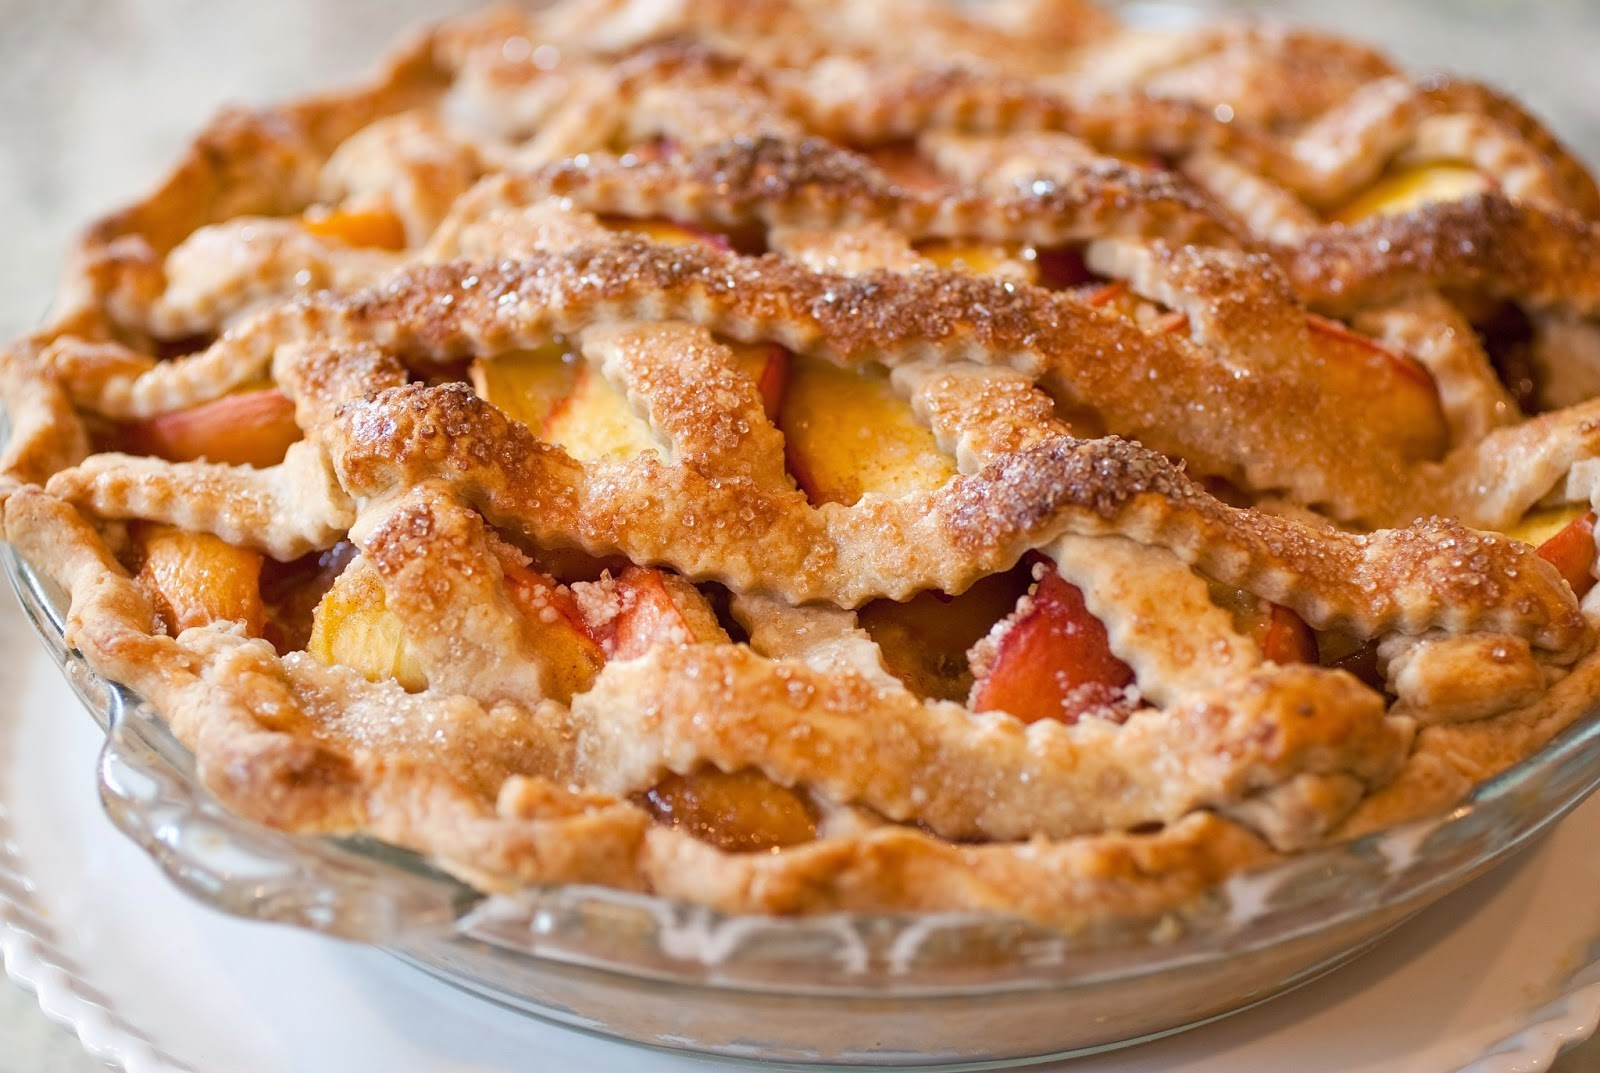 http://tishboyle.blogspot.com/2013/07/perfect-peach-pie.html